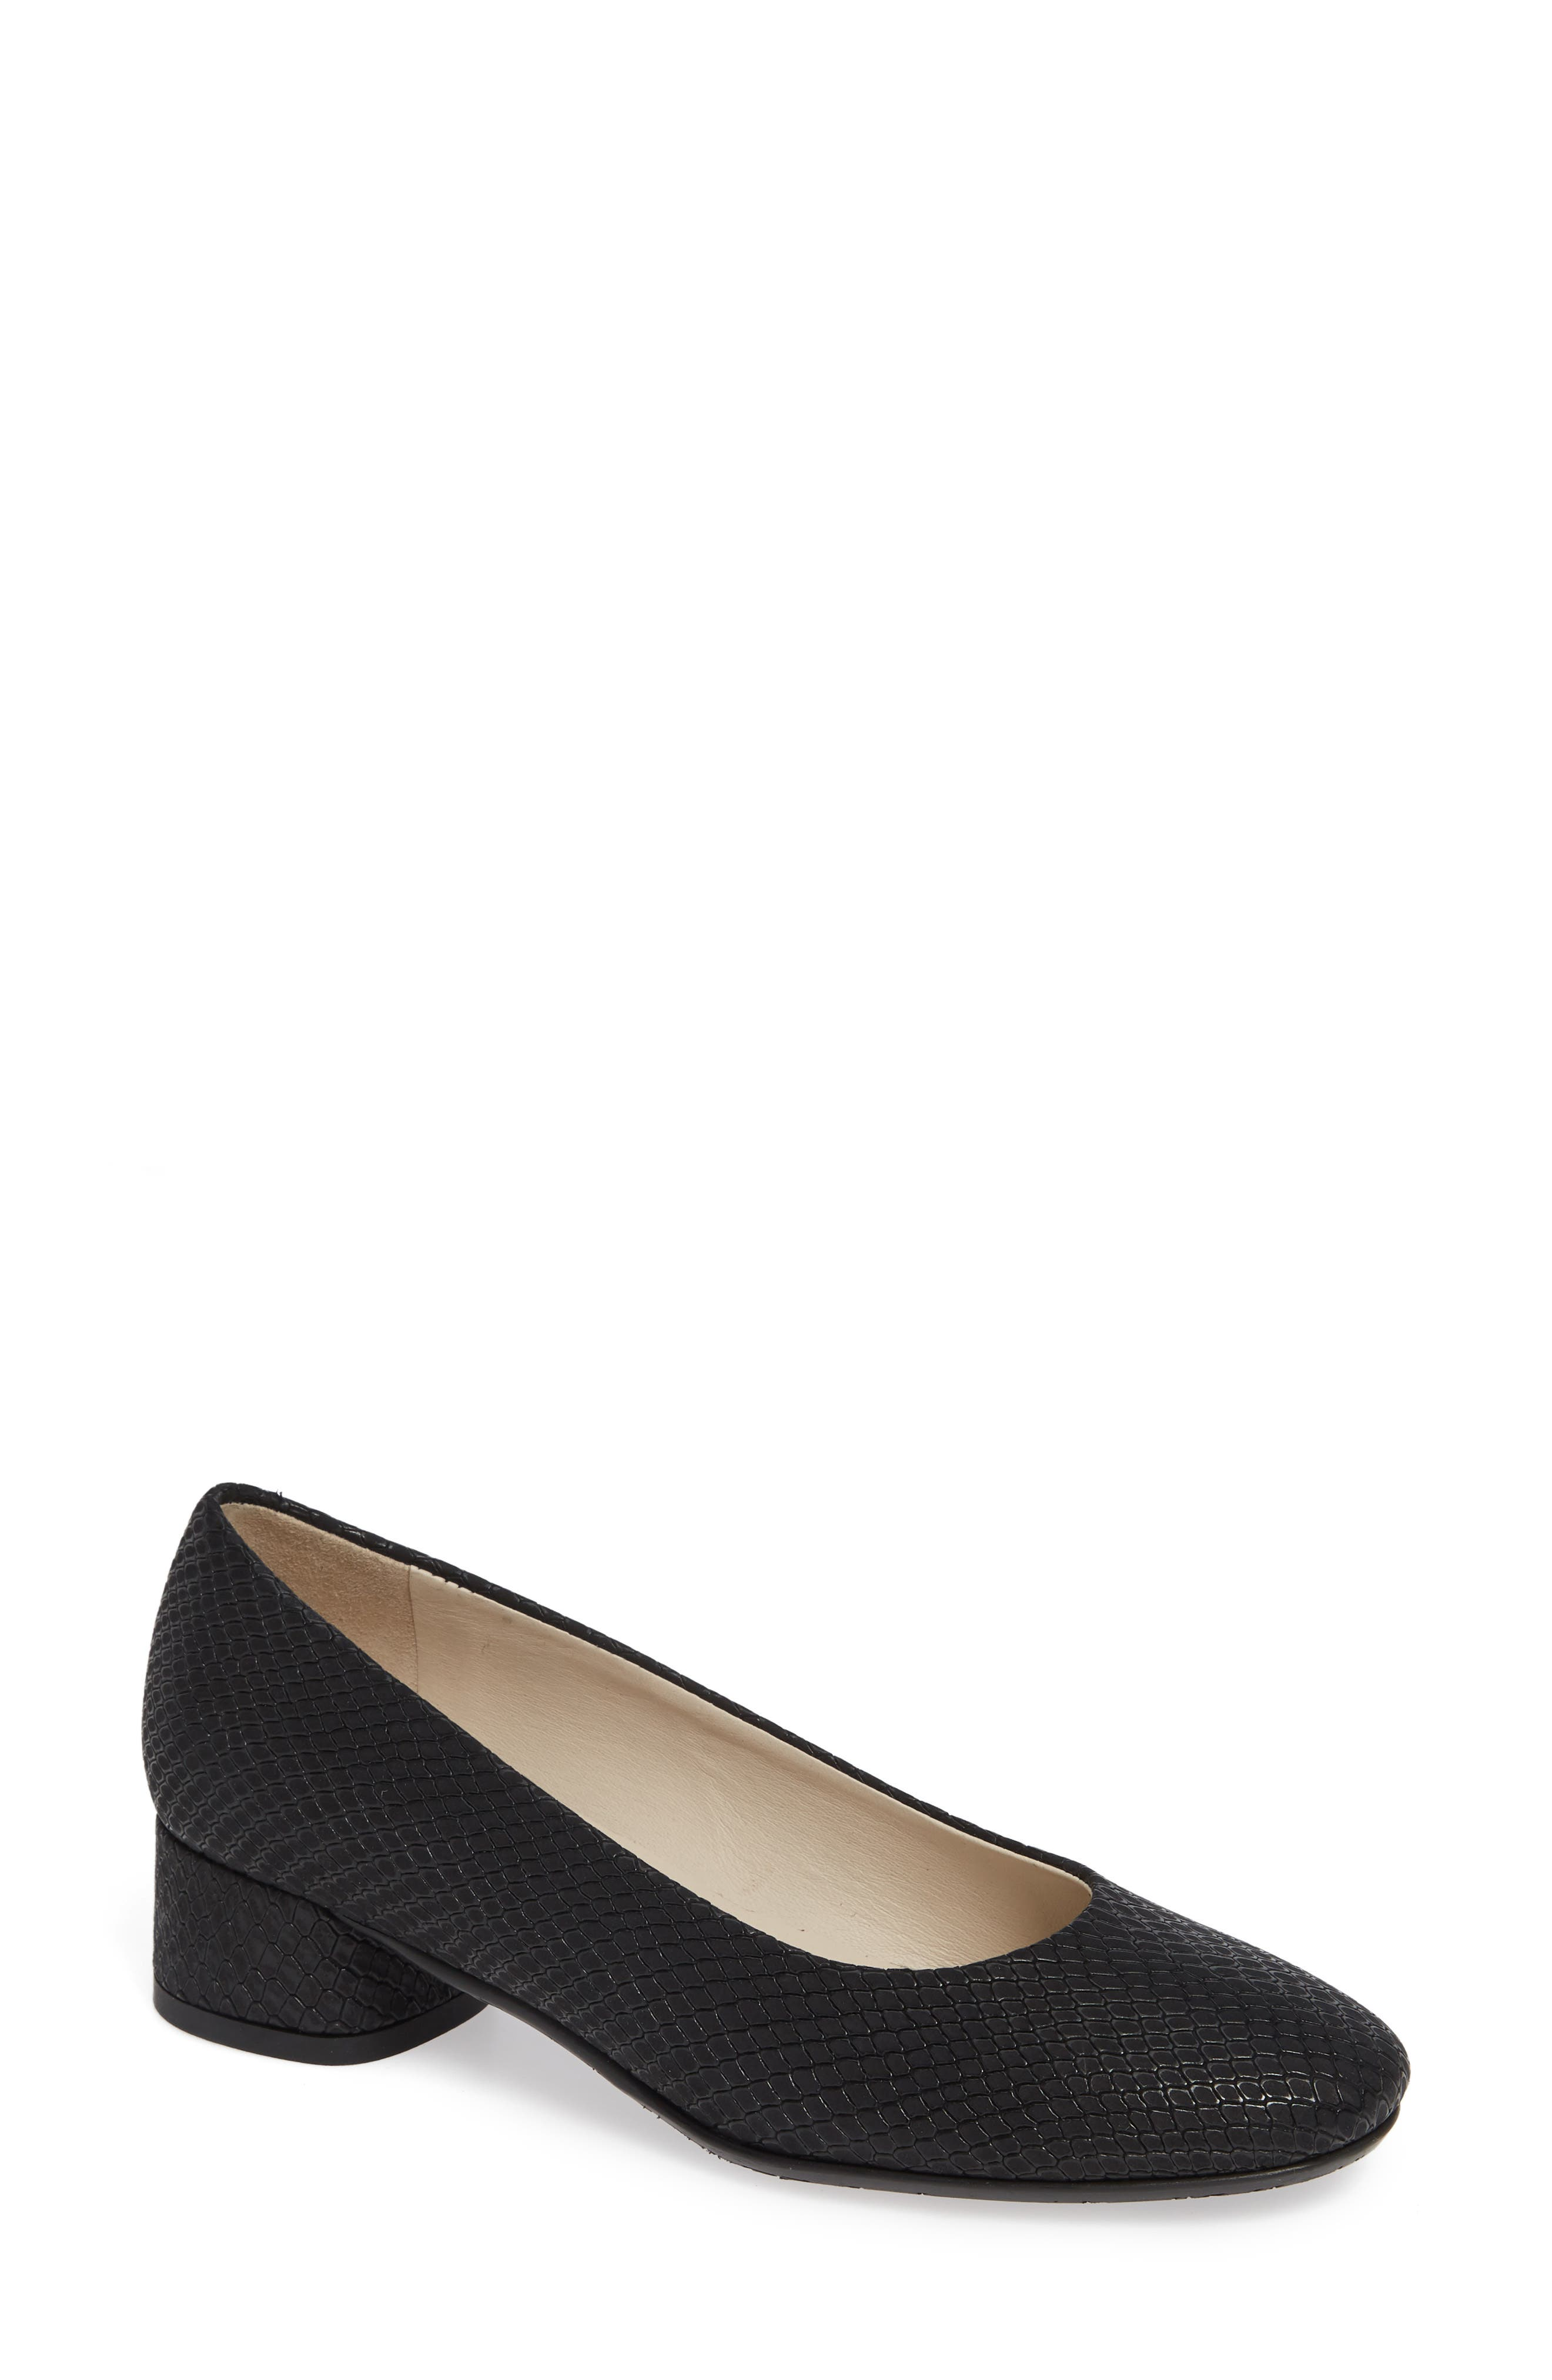 AMALFI BY RANGONI, Record Pump, Main thumbnail 1, color, BLACK OXIDE SUEDE